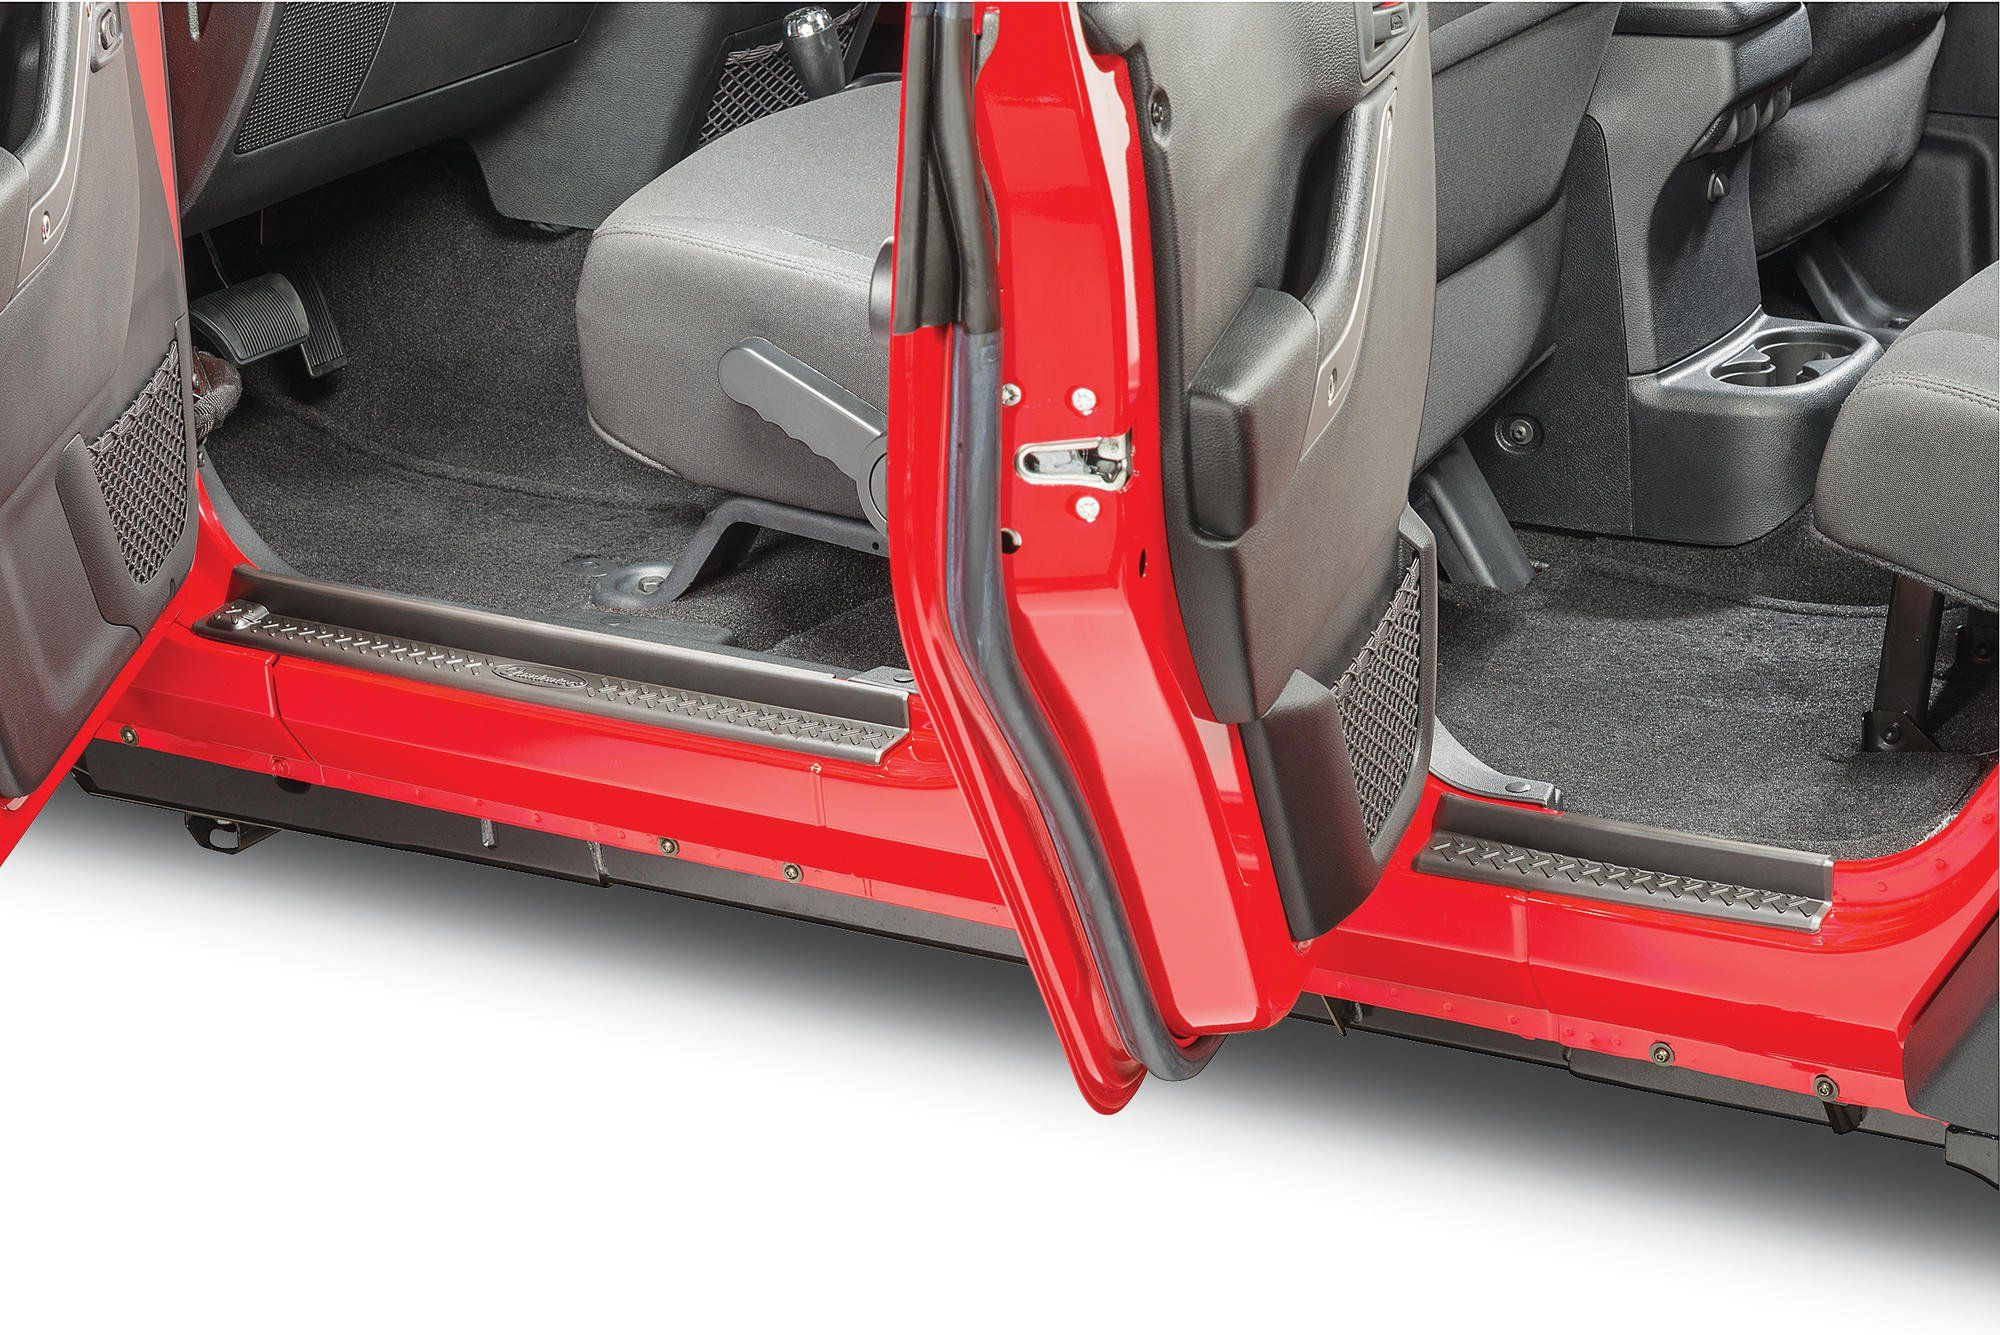 d78d4138f72b4d1e0b6728268745e419 Take A Look About Jeep Dog Accessories with Captivating Gallery Cars Review